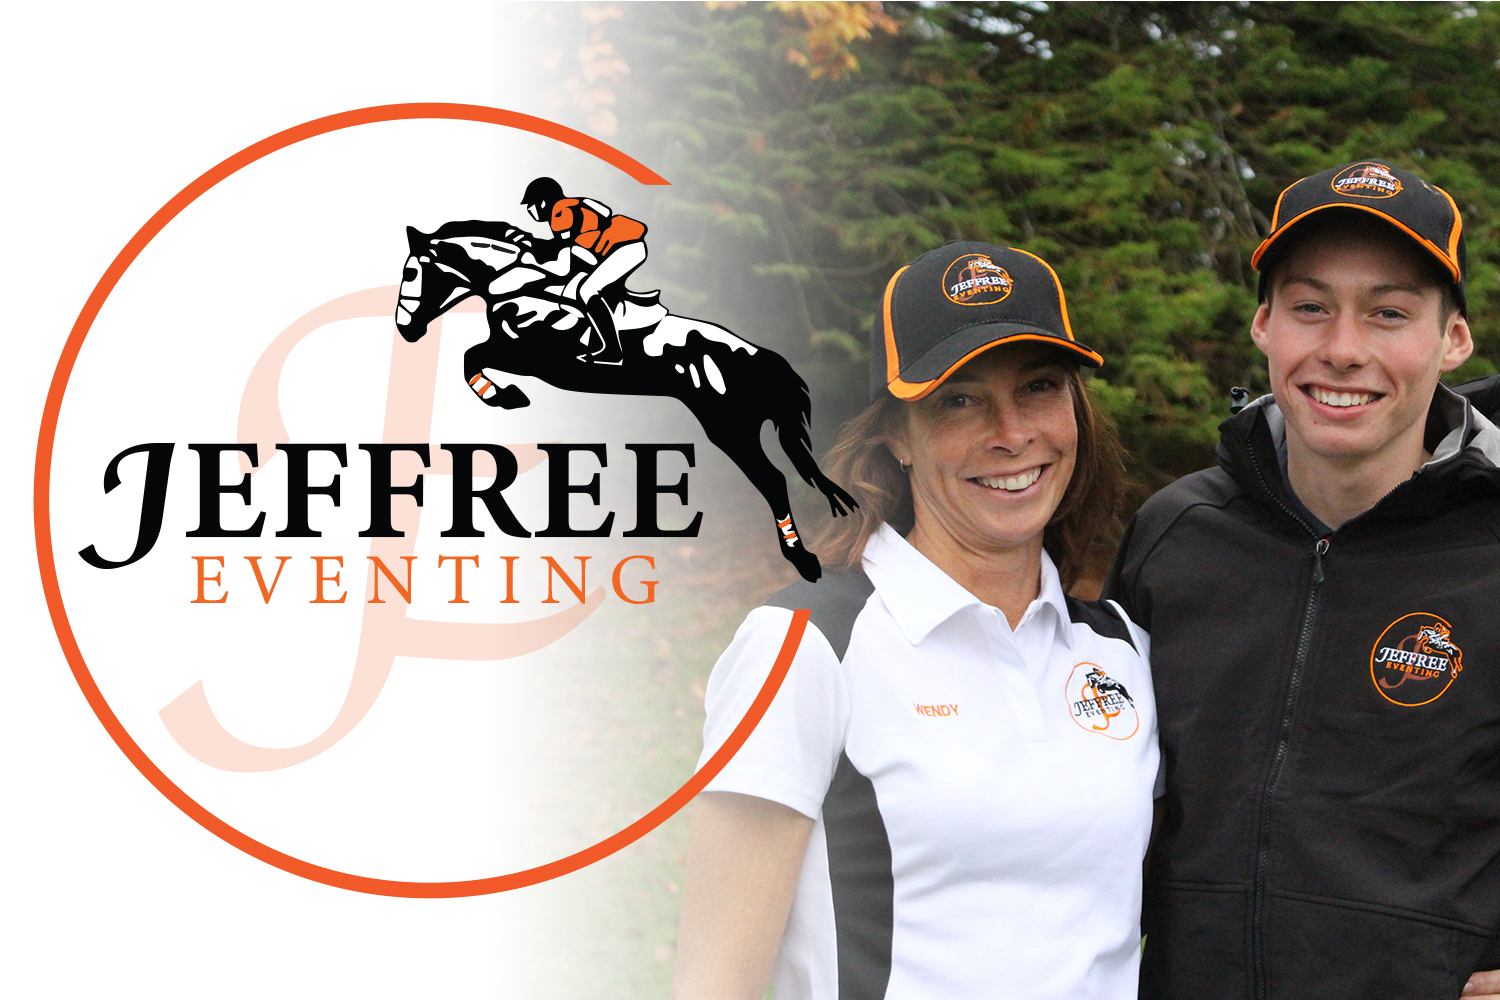 Jeffree Eventing Business Launch